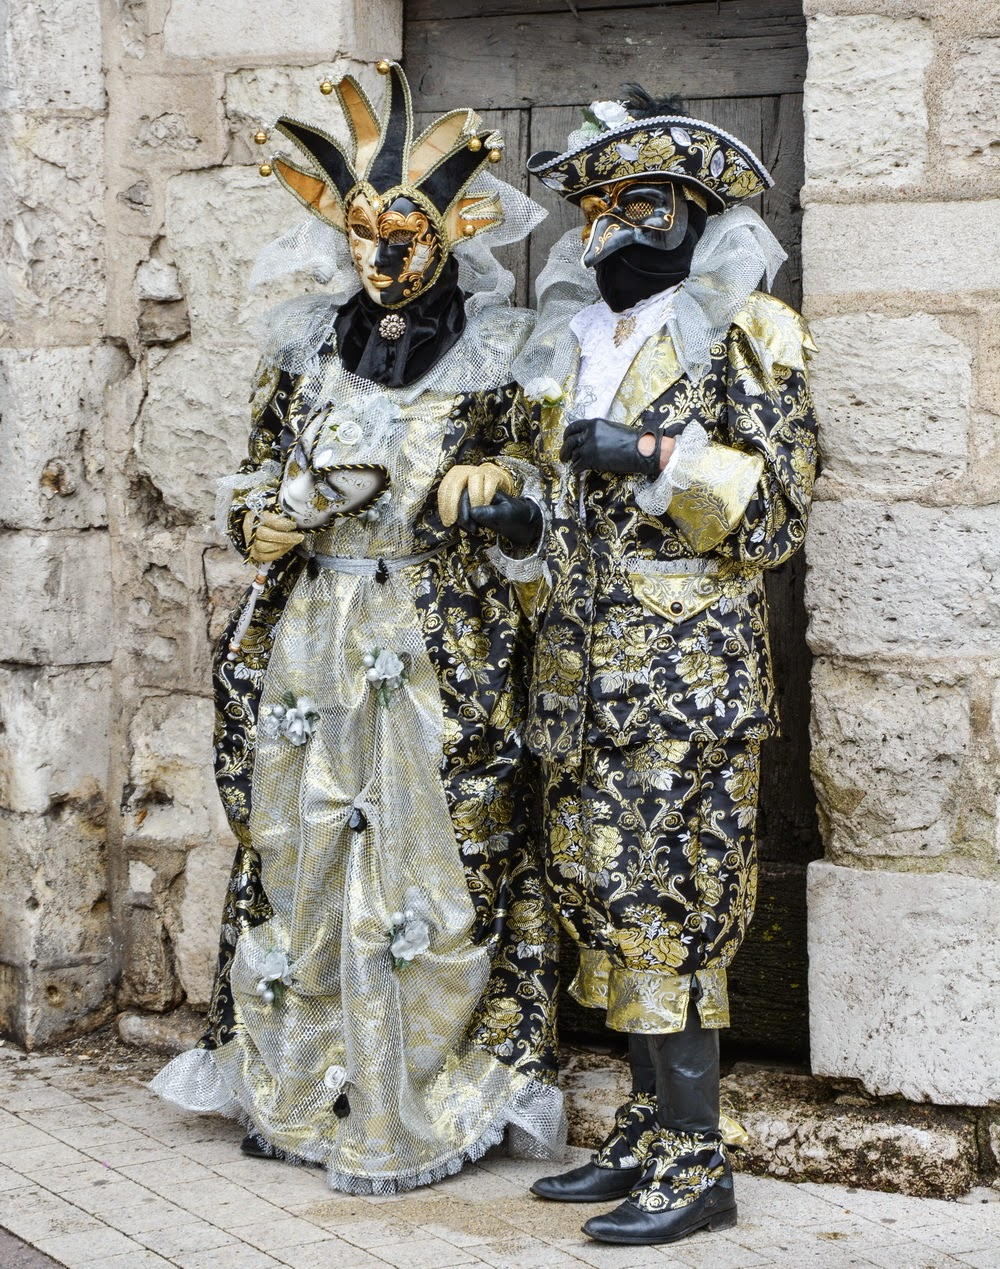 costumed persons from the venetian carnival at Mehun-sur-Yèvre